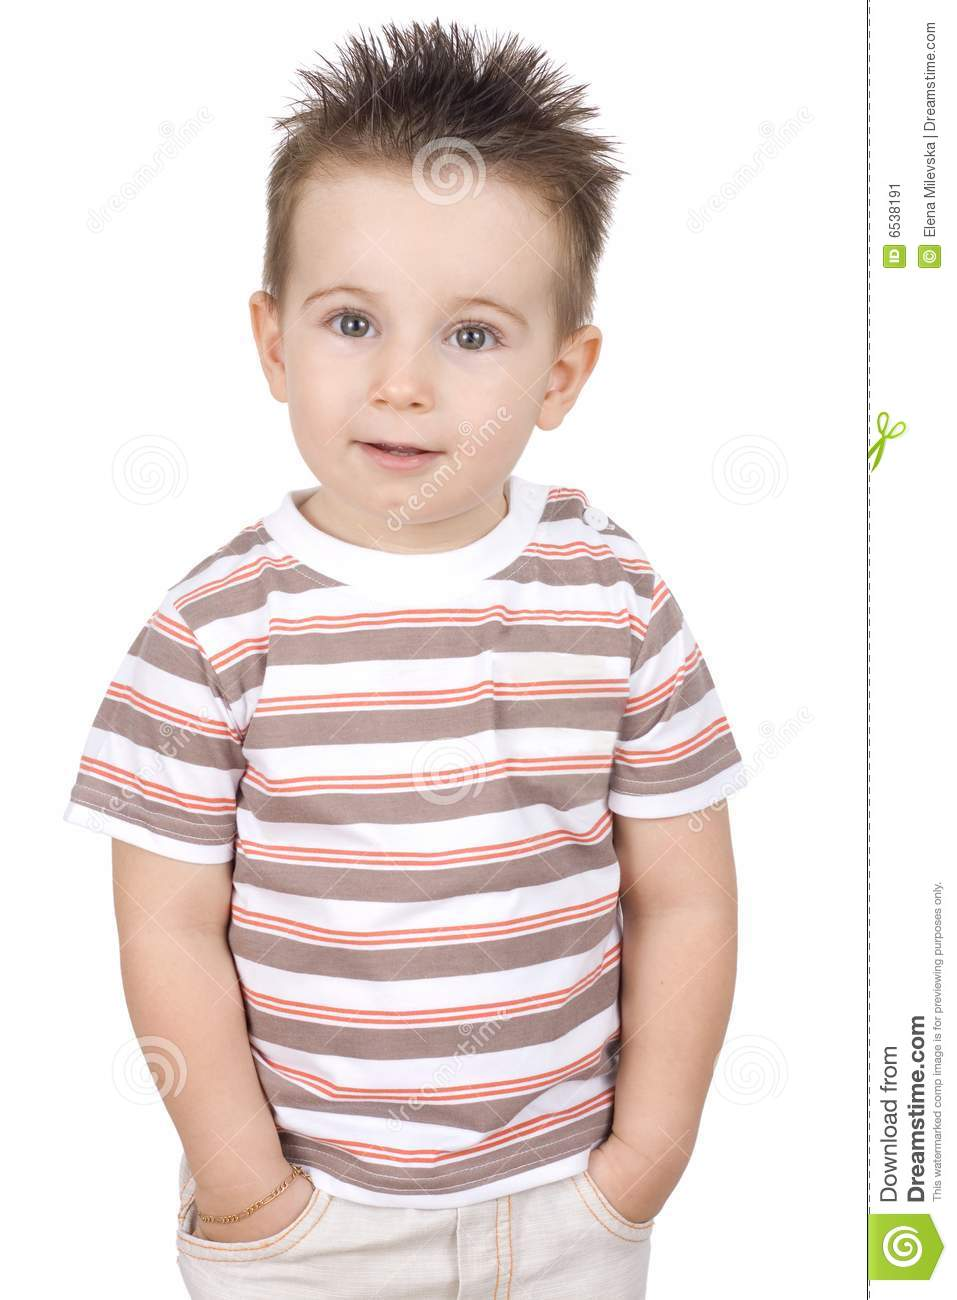 Boy Stock Images - Download 1 Royalty Free Photos